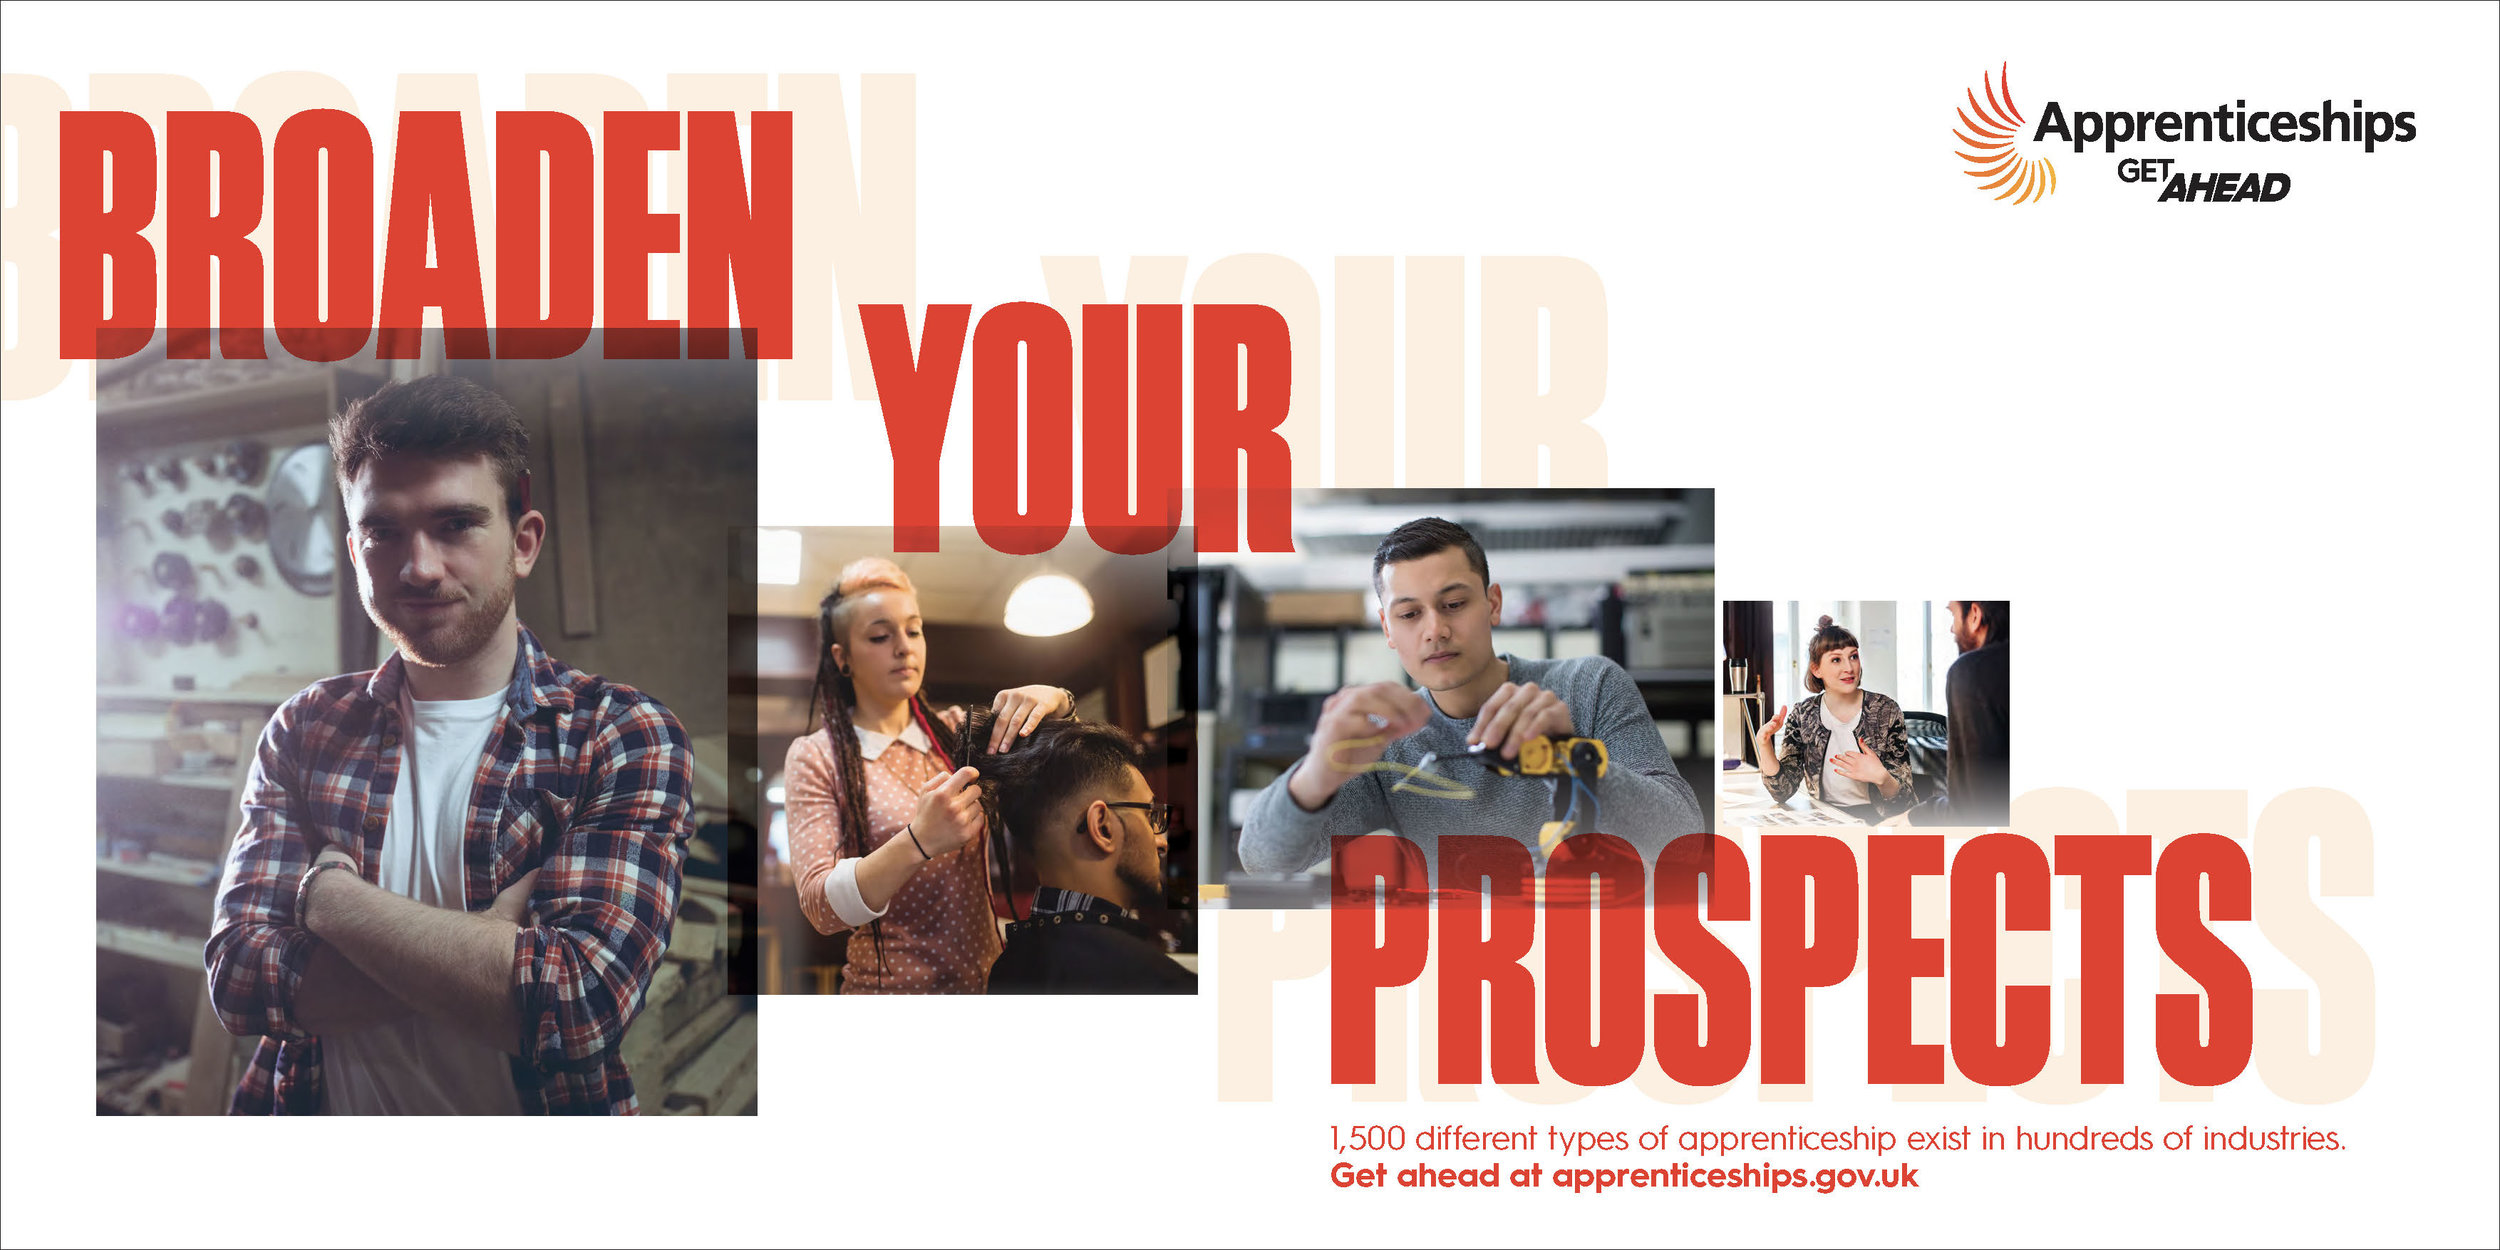 114905-Apprenticeships-48-Sheets-v4_Comments_Page_7_3508.jpg